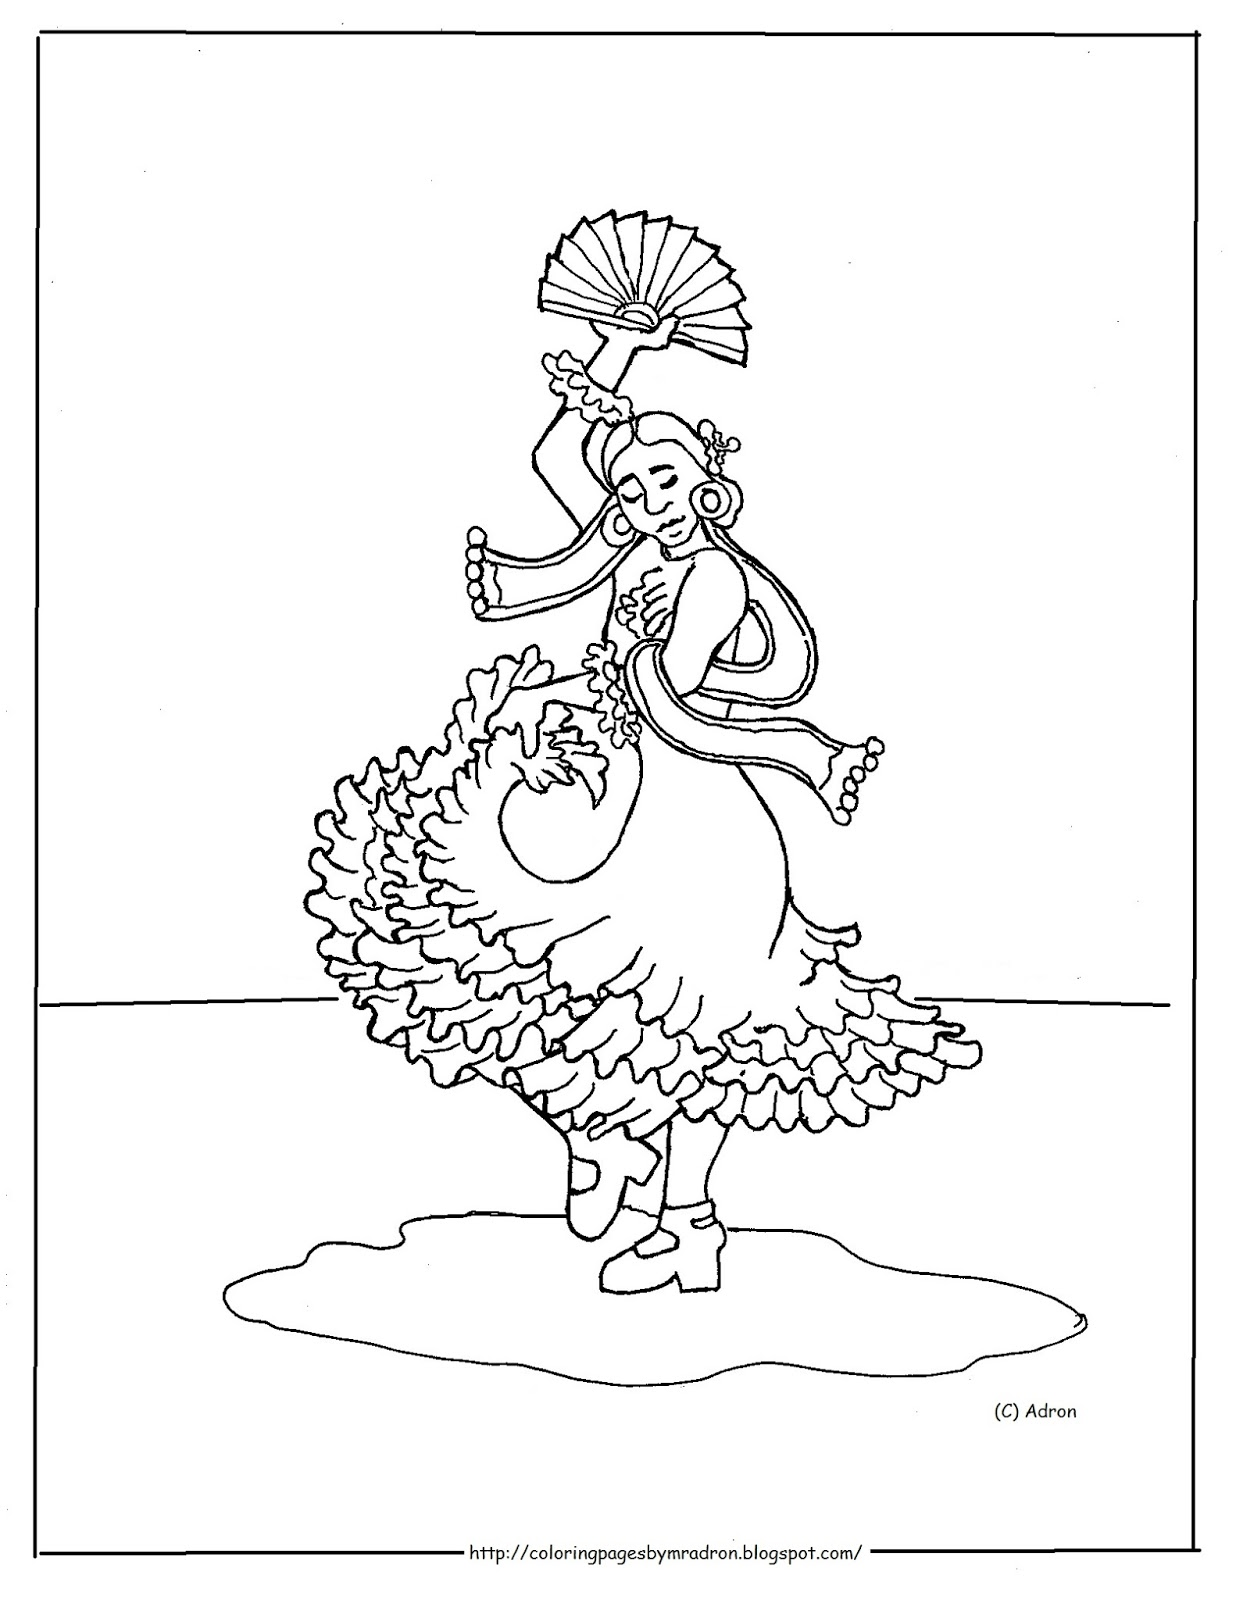 Coloring Pages for Kids by Mr. Adron: Printable Spanish